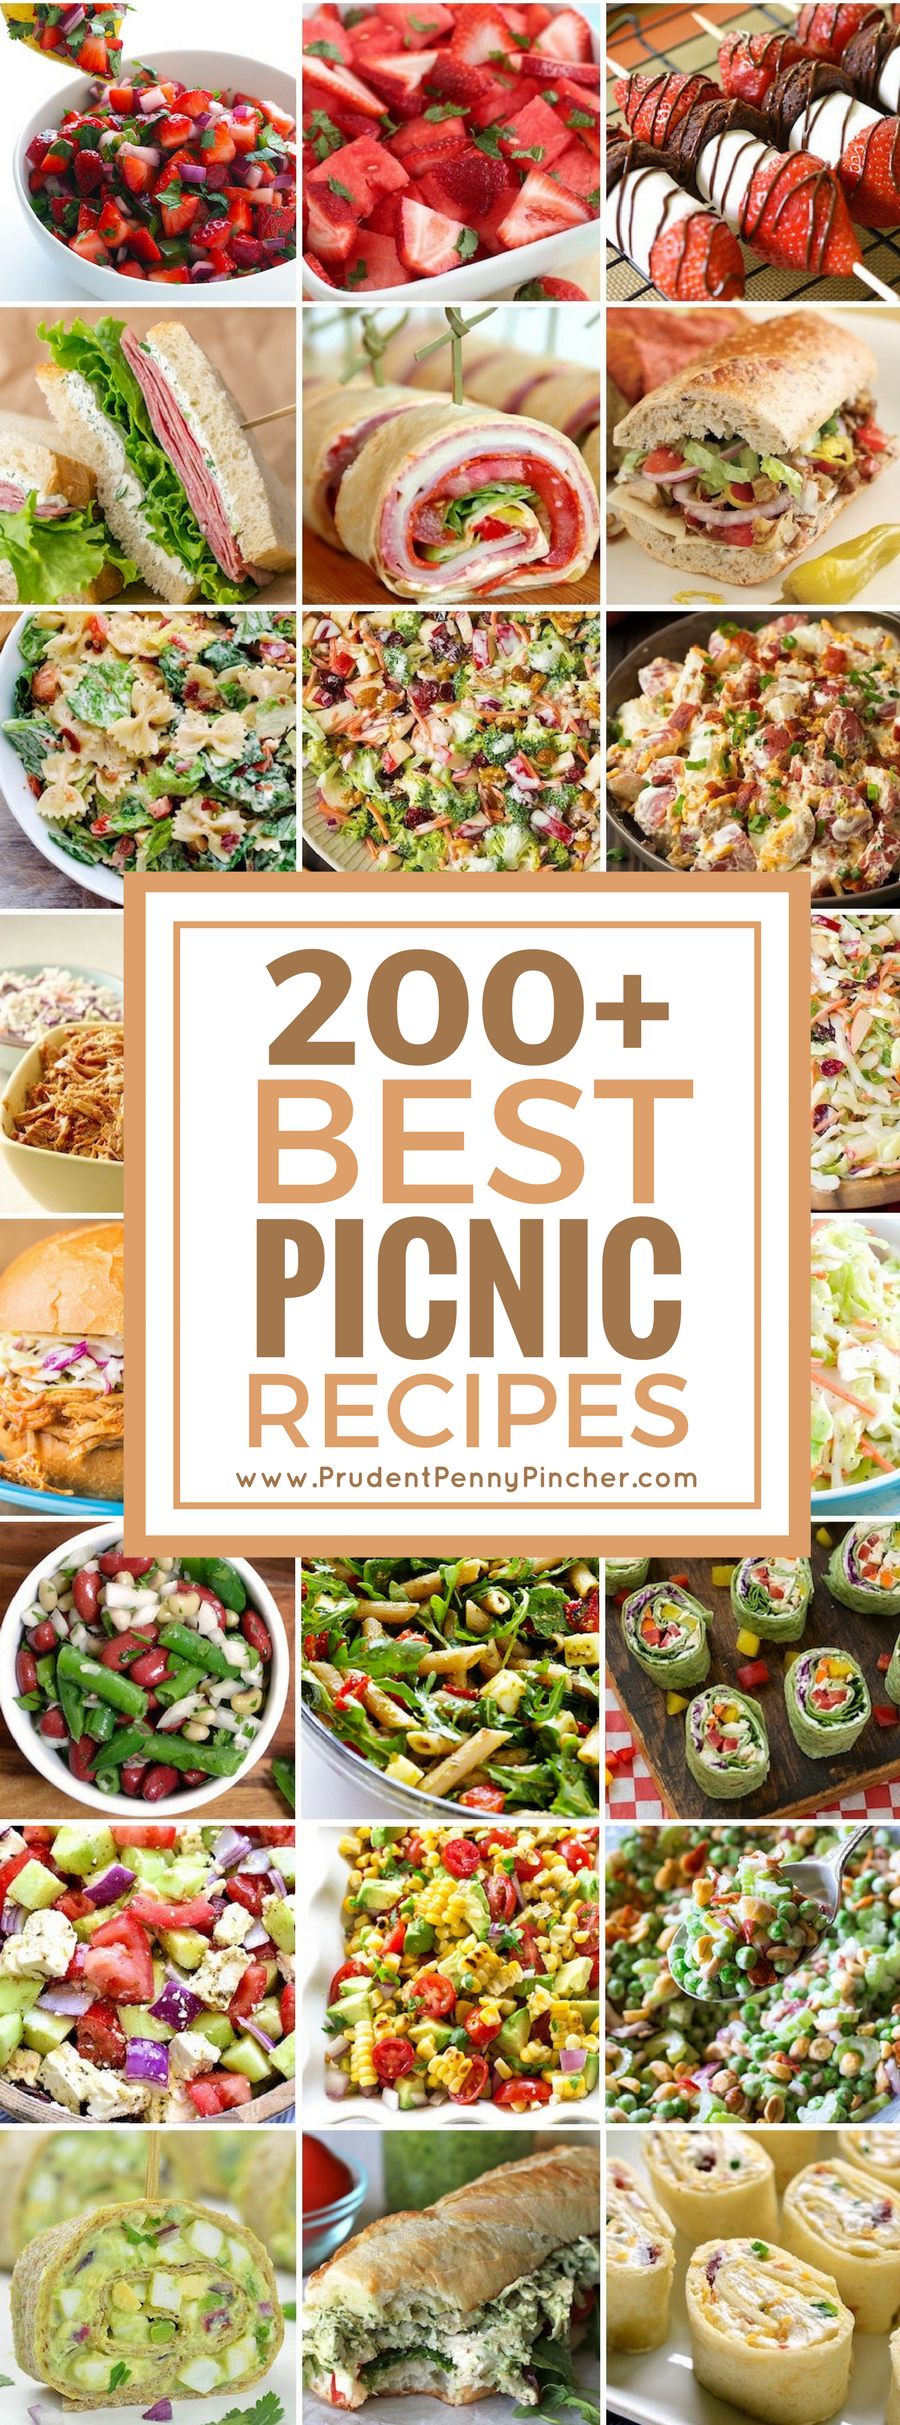 Awesome Picnic Ideas Youve (Probably) Never Tried Before